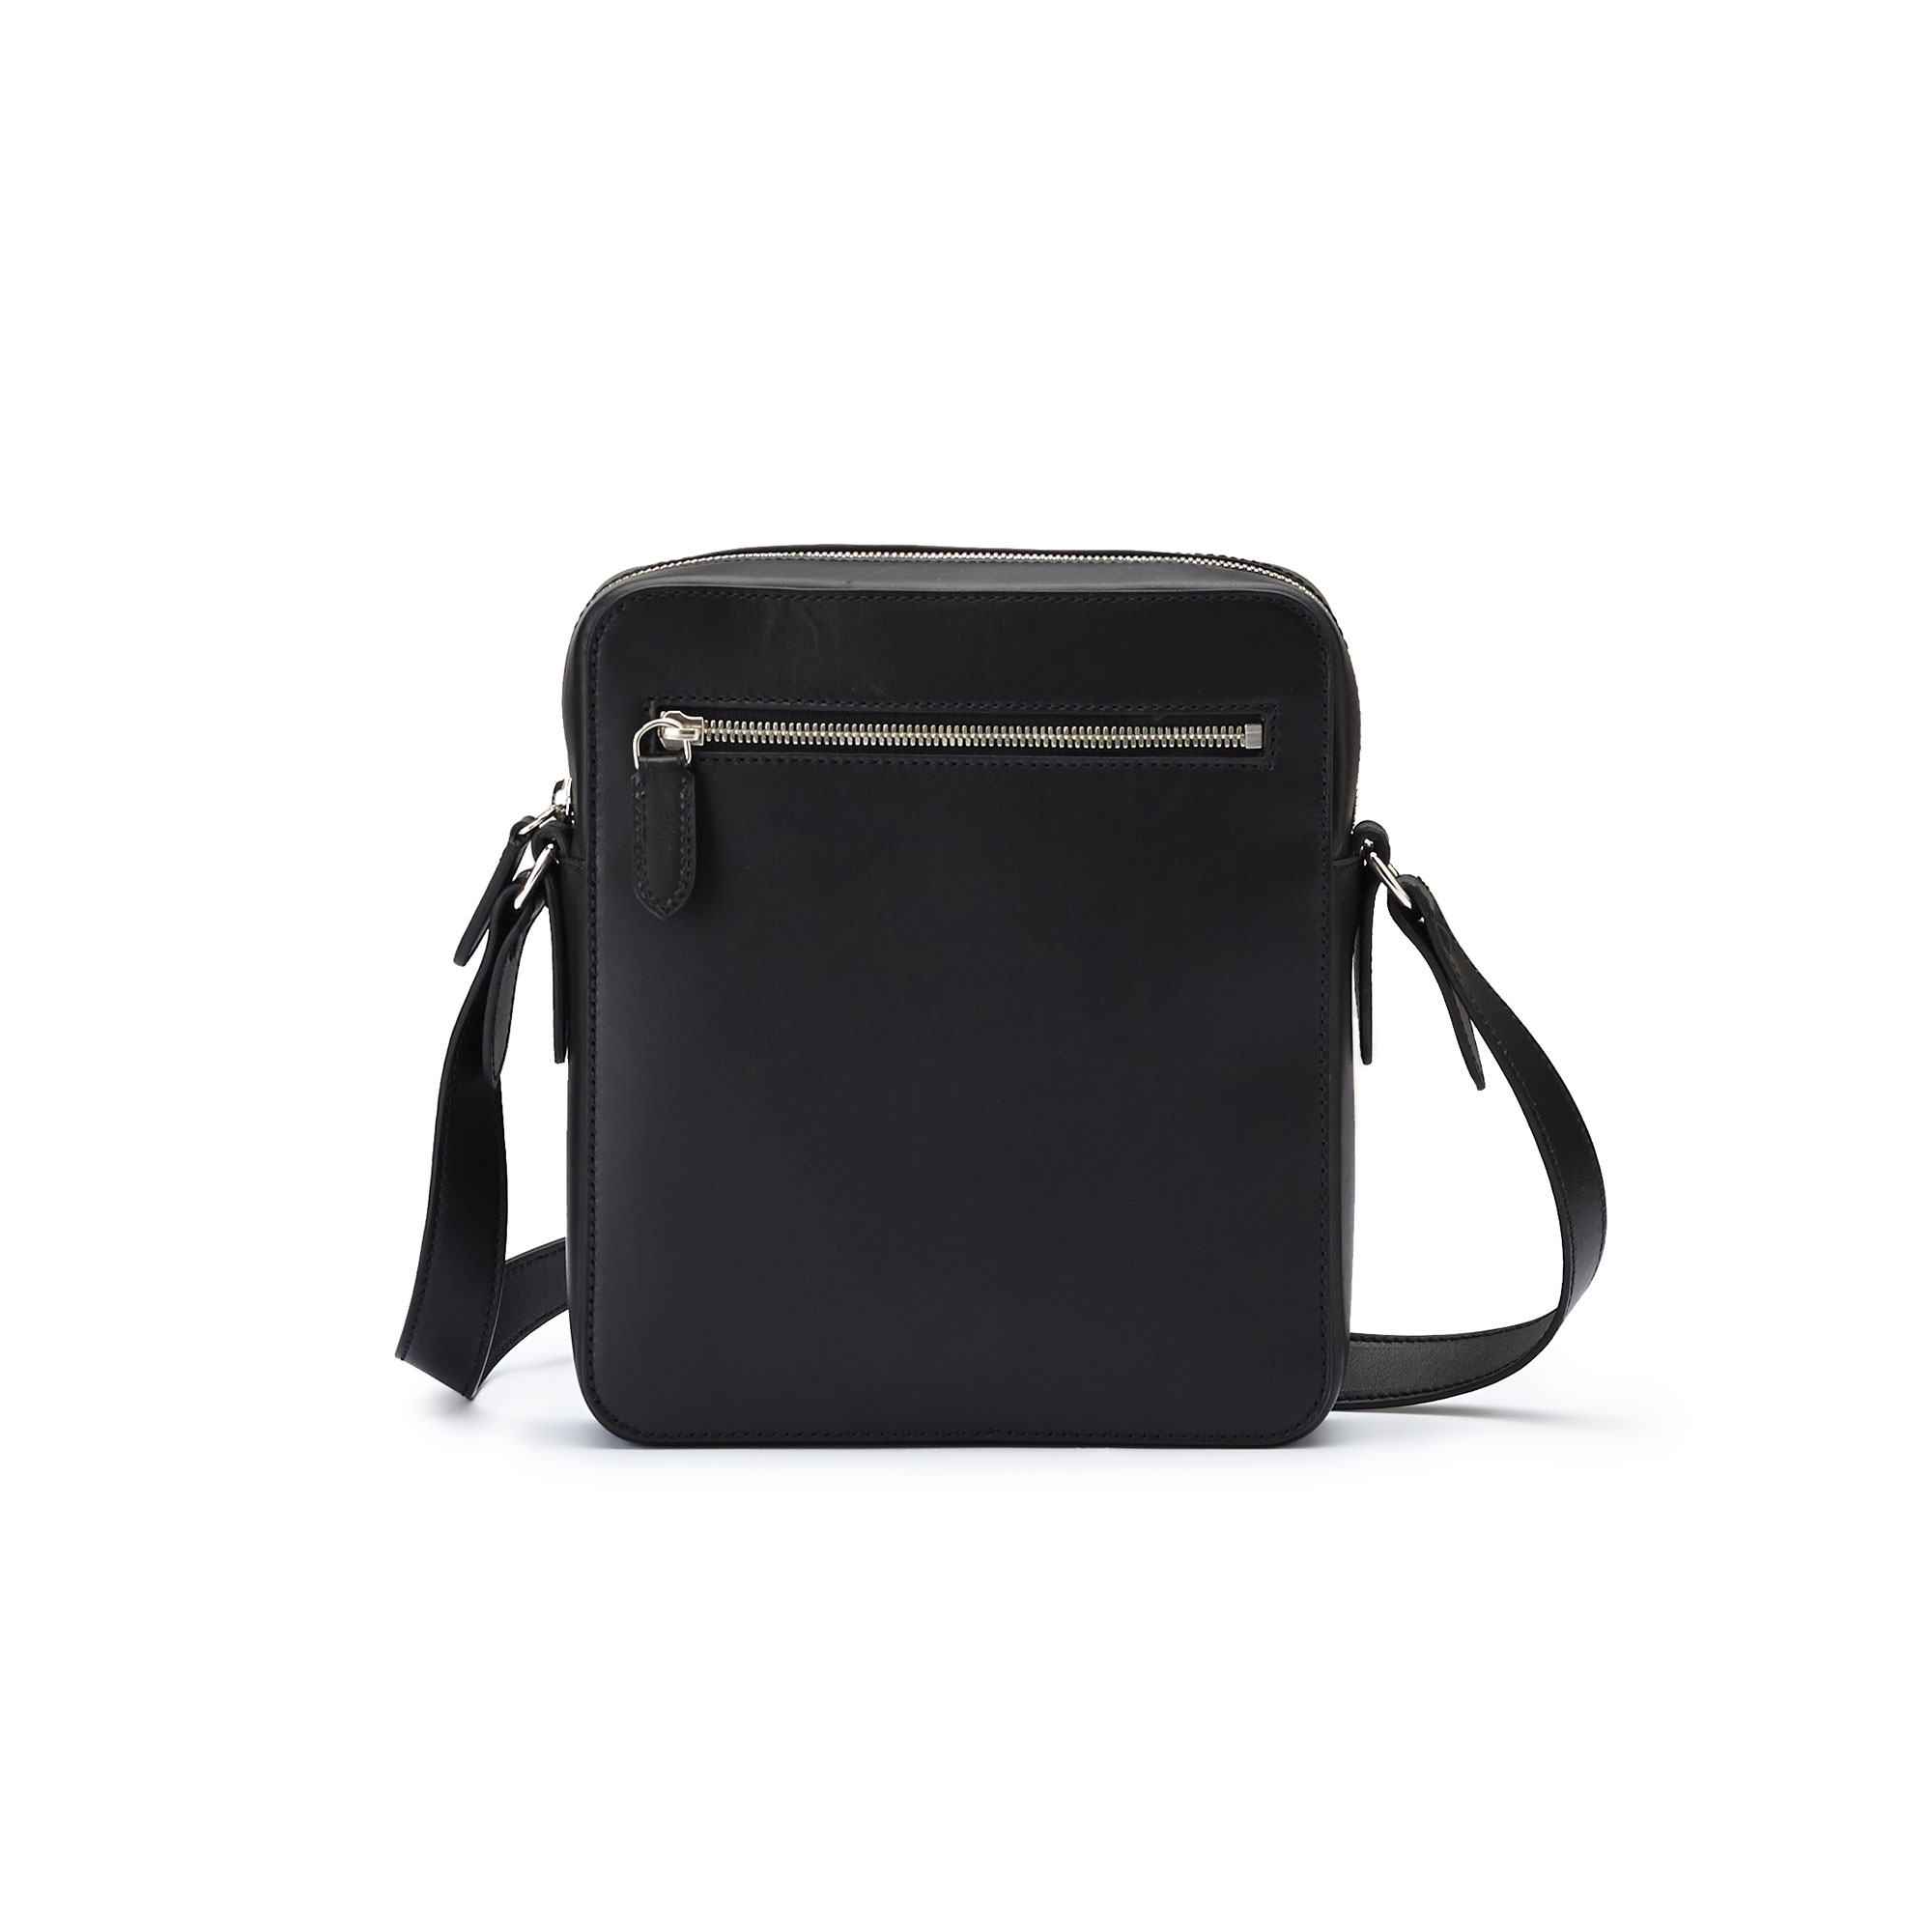 The black french calf Man Bag by Bertoni 1949 04